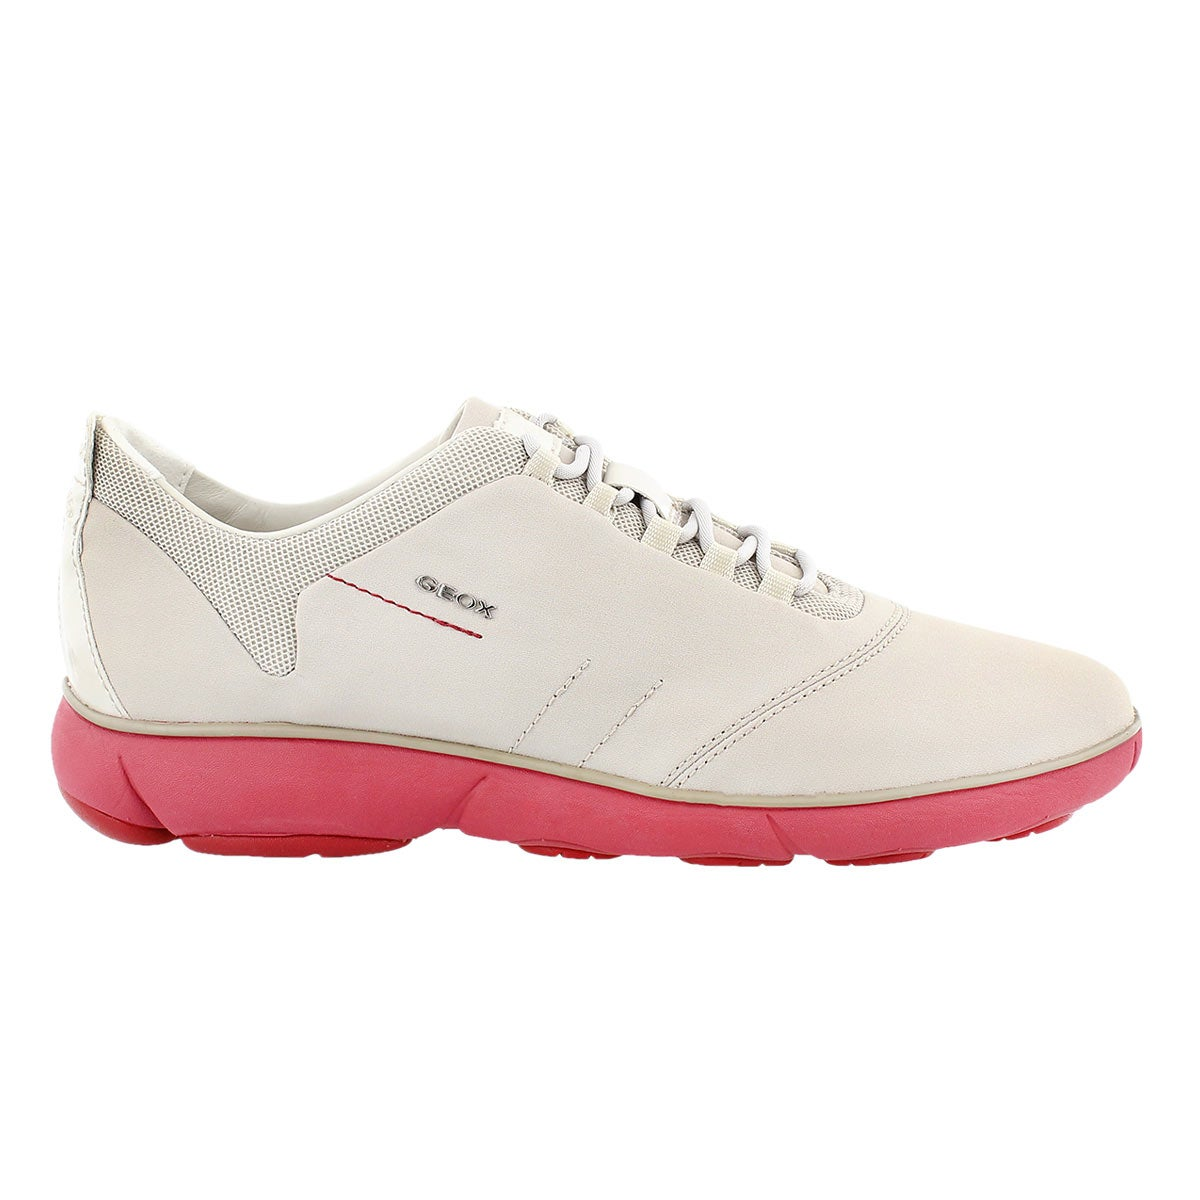 Lds Nebula off white/coral running shoe